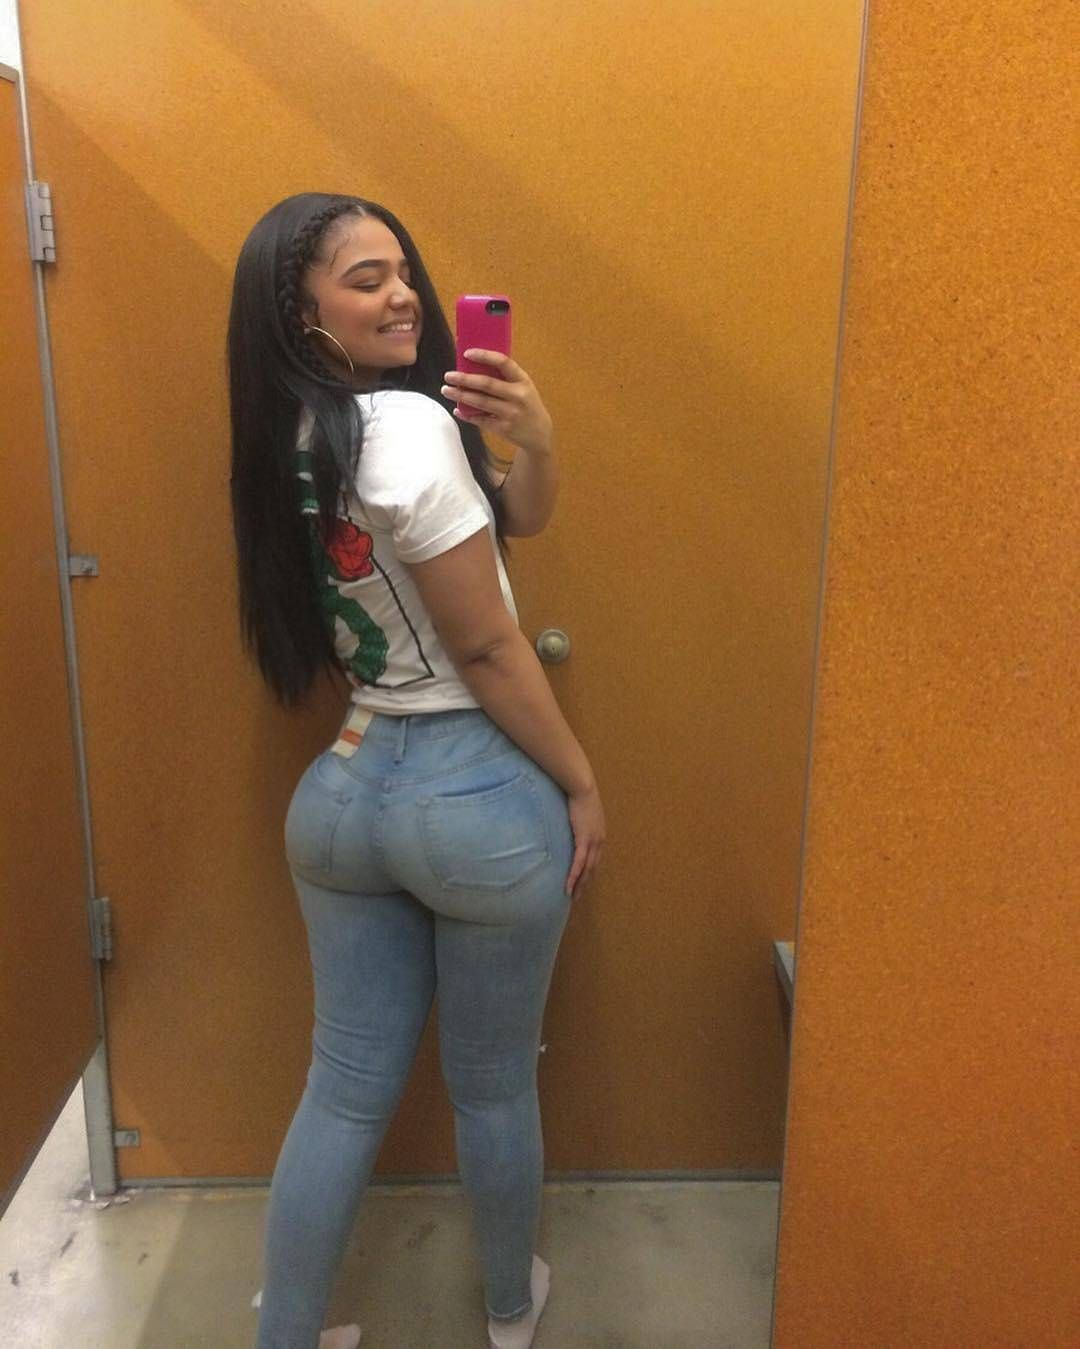 Forum on this topic: Ashely judd, full-video-malu-trevejo-nudes-photos-new/